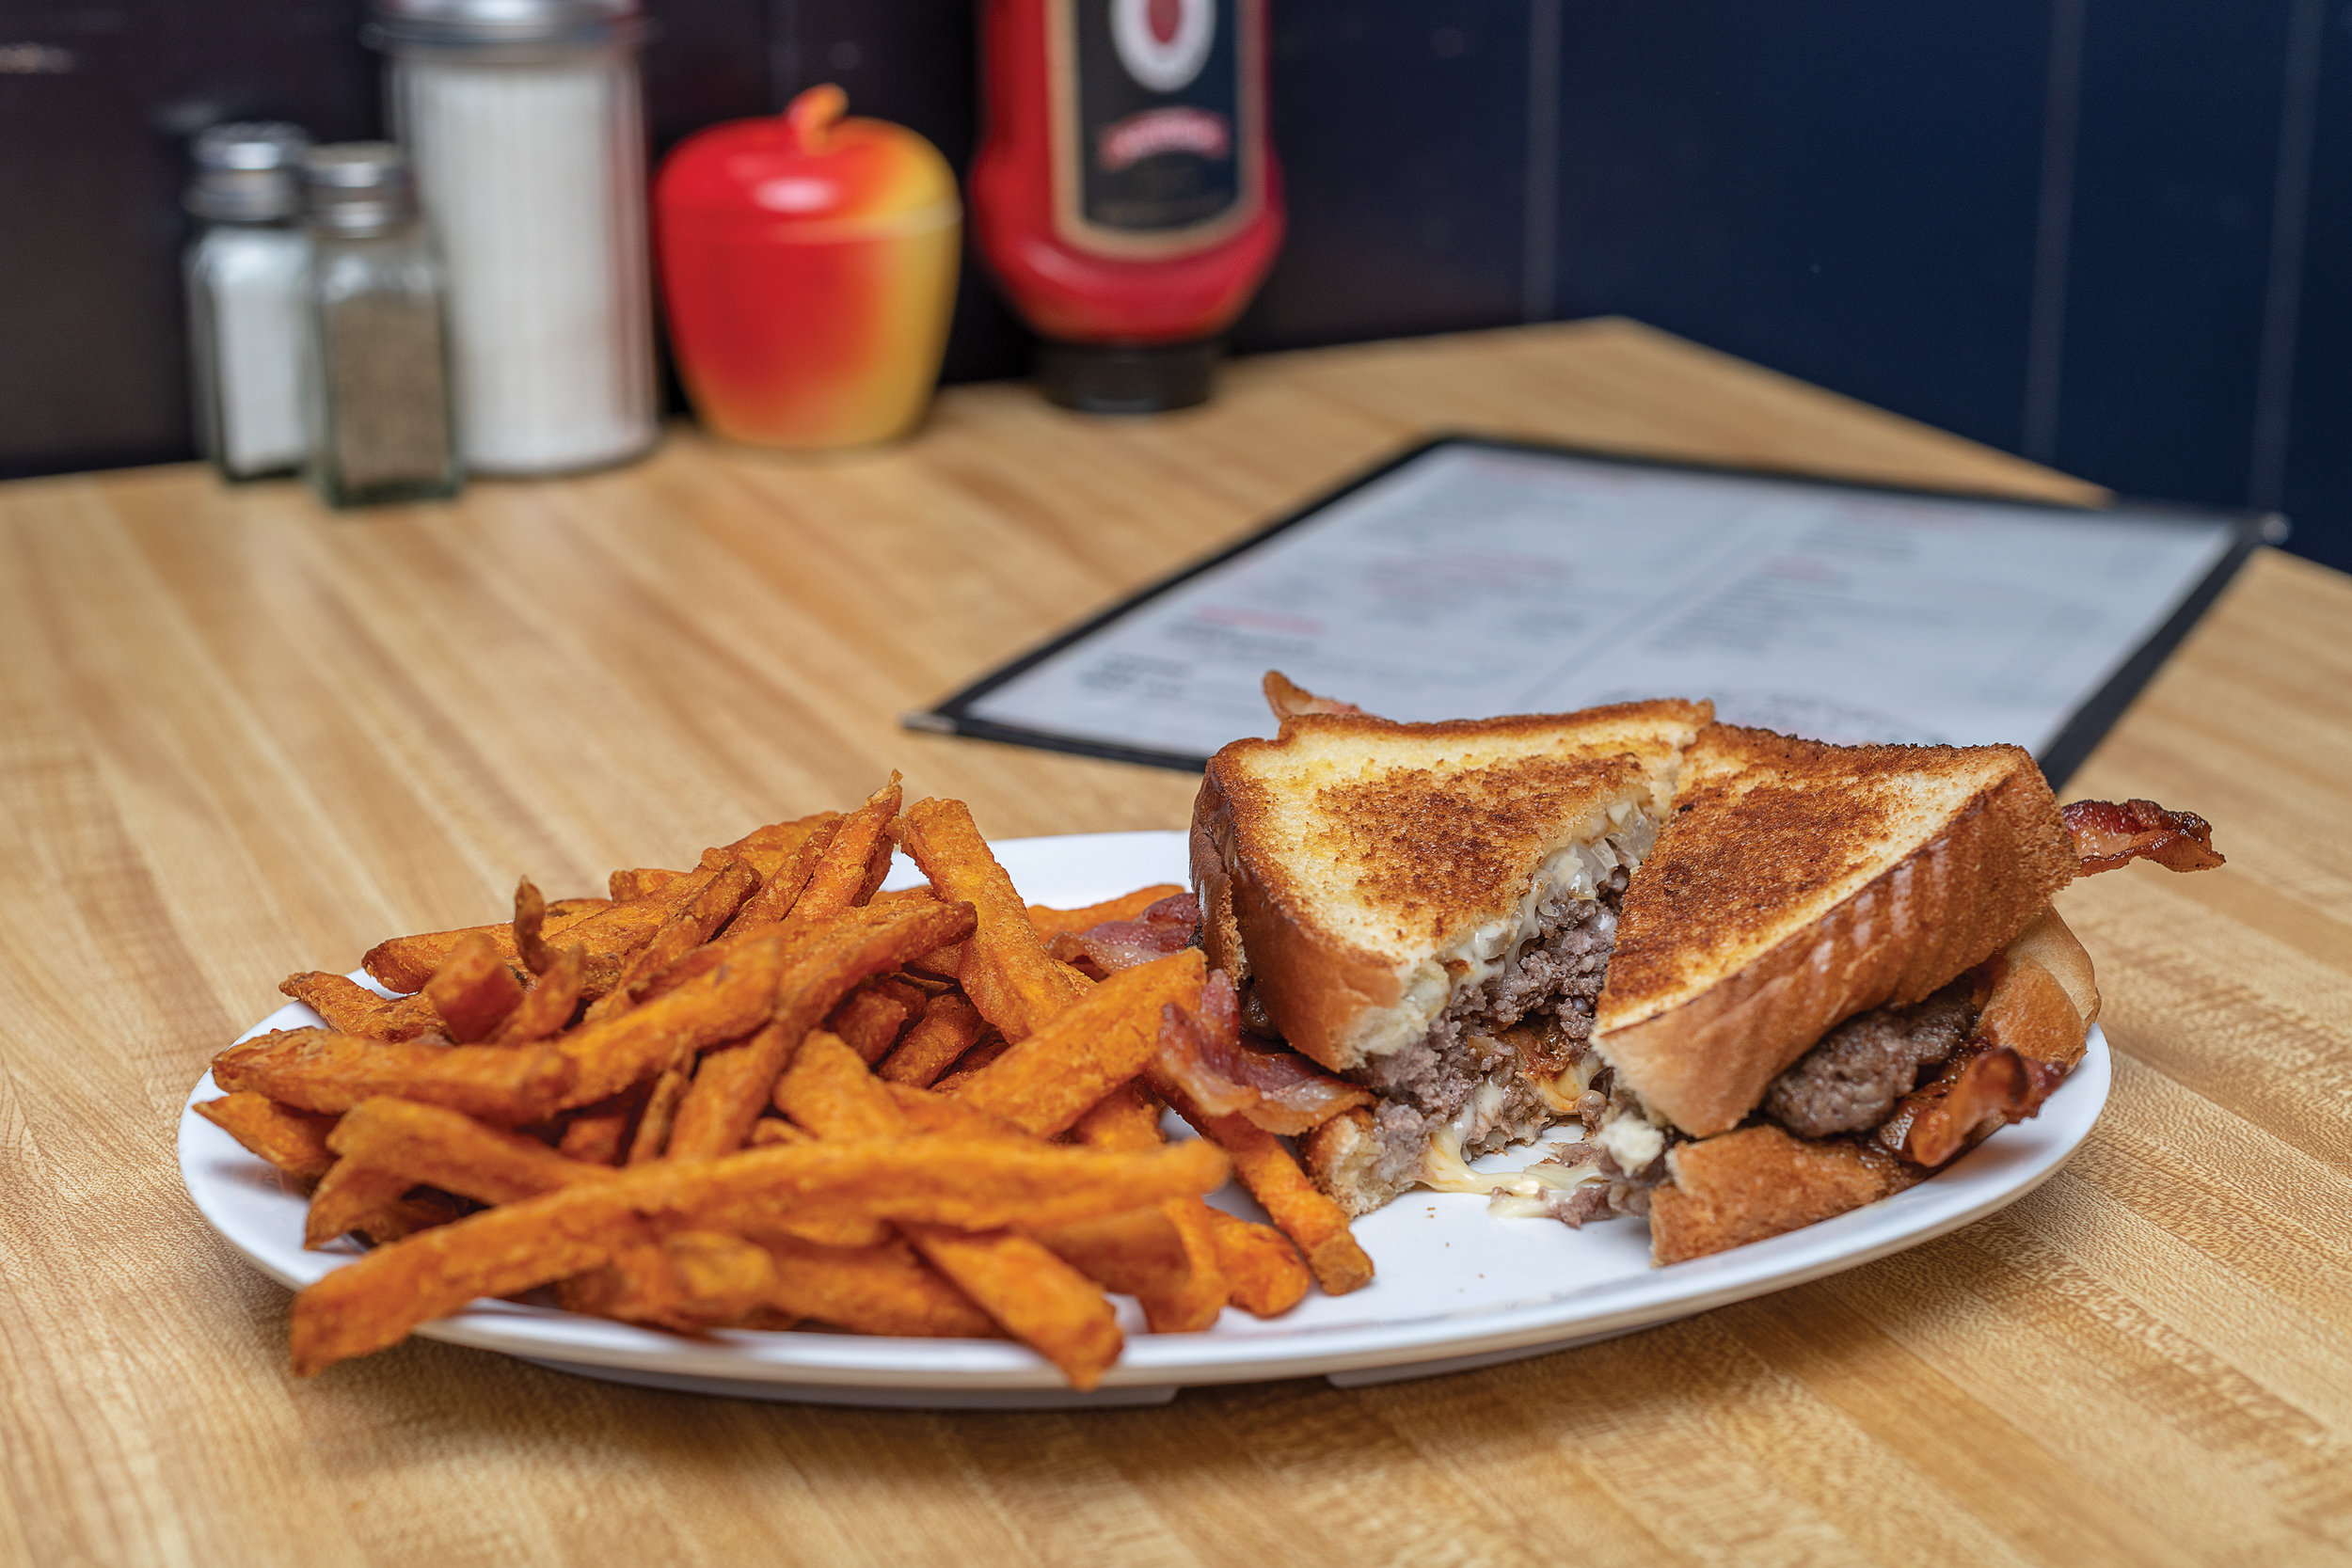 Patty melt with chipotle sauce and bacon with sweet potato fries